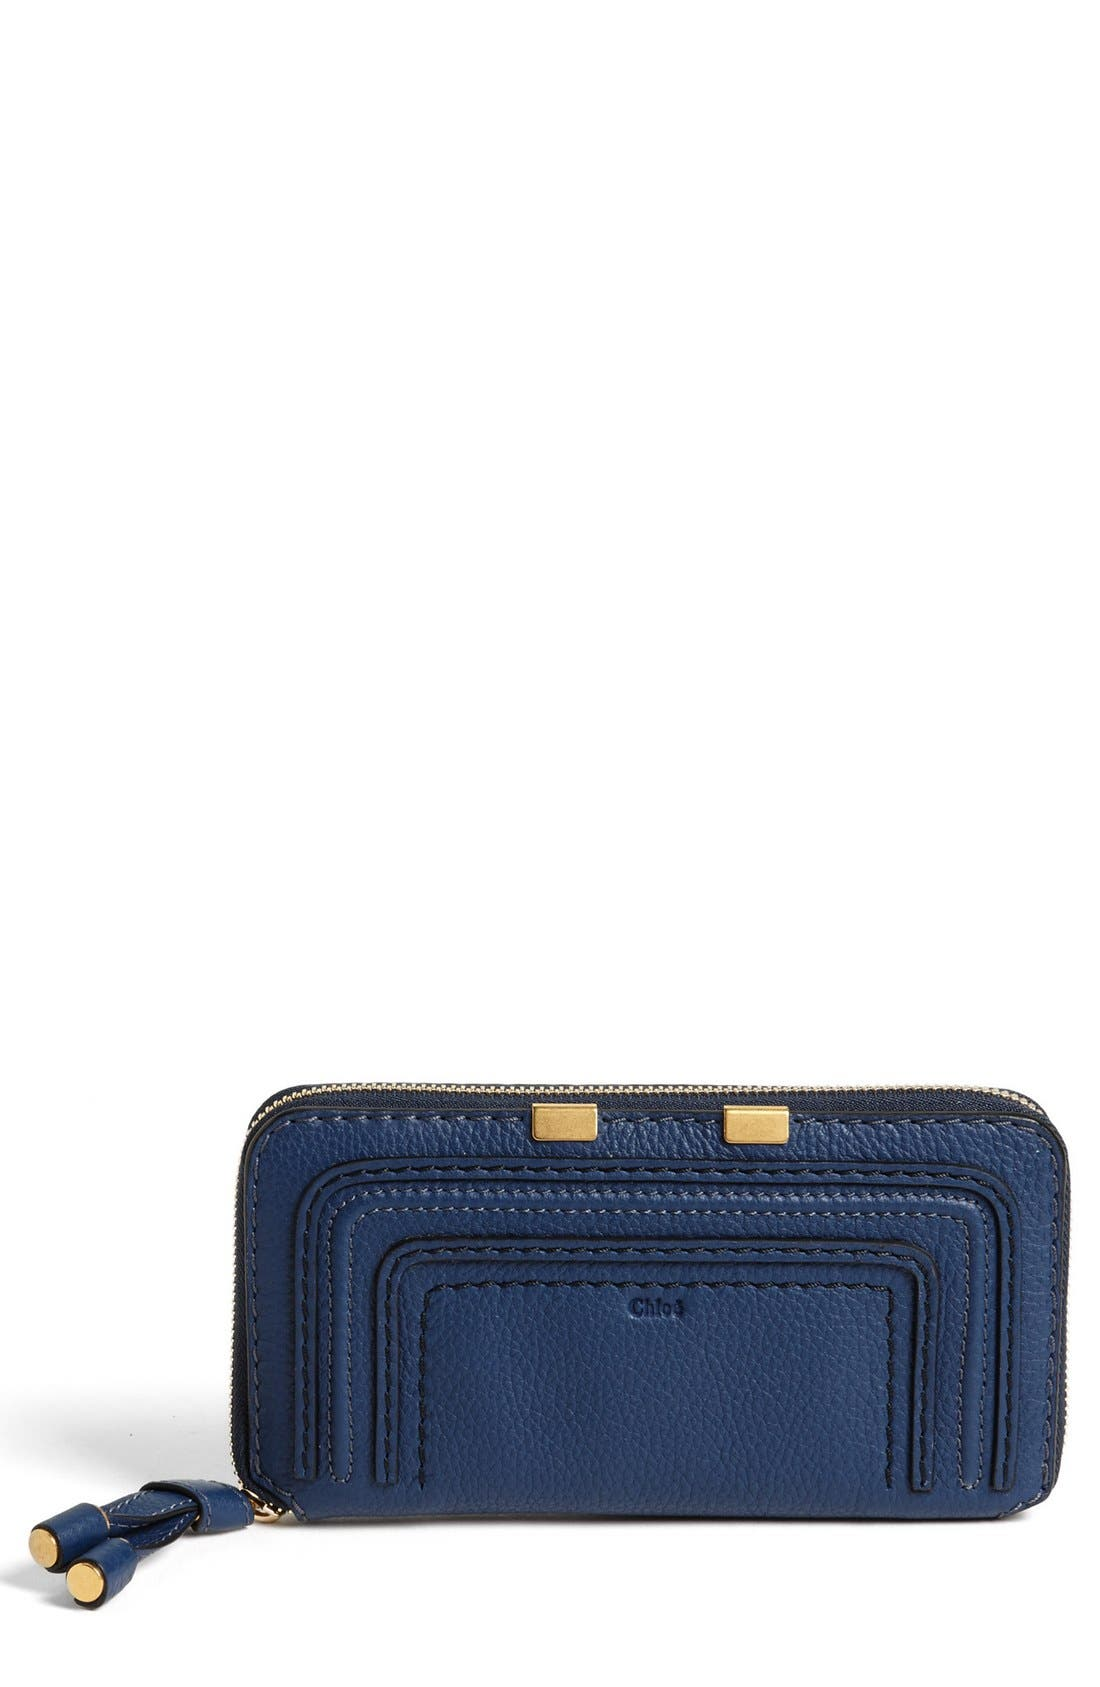 Chloé 'Marcie - Long' Zip Around Wallet